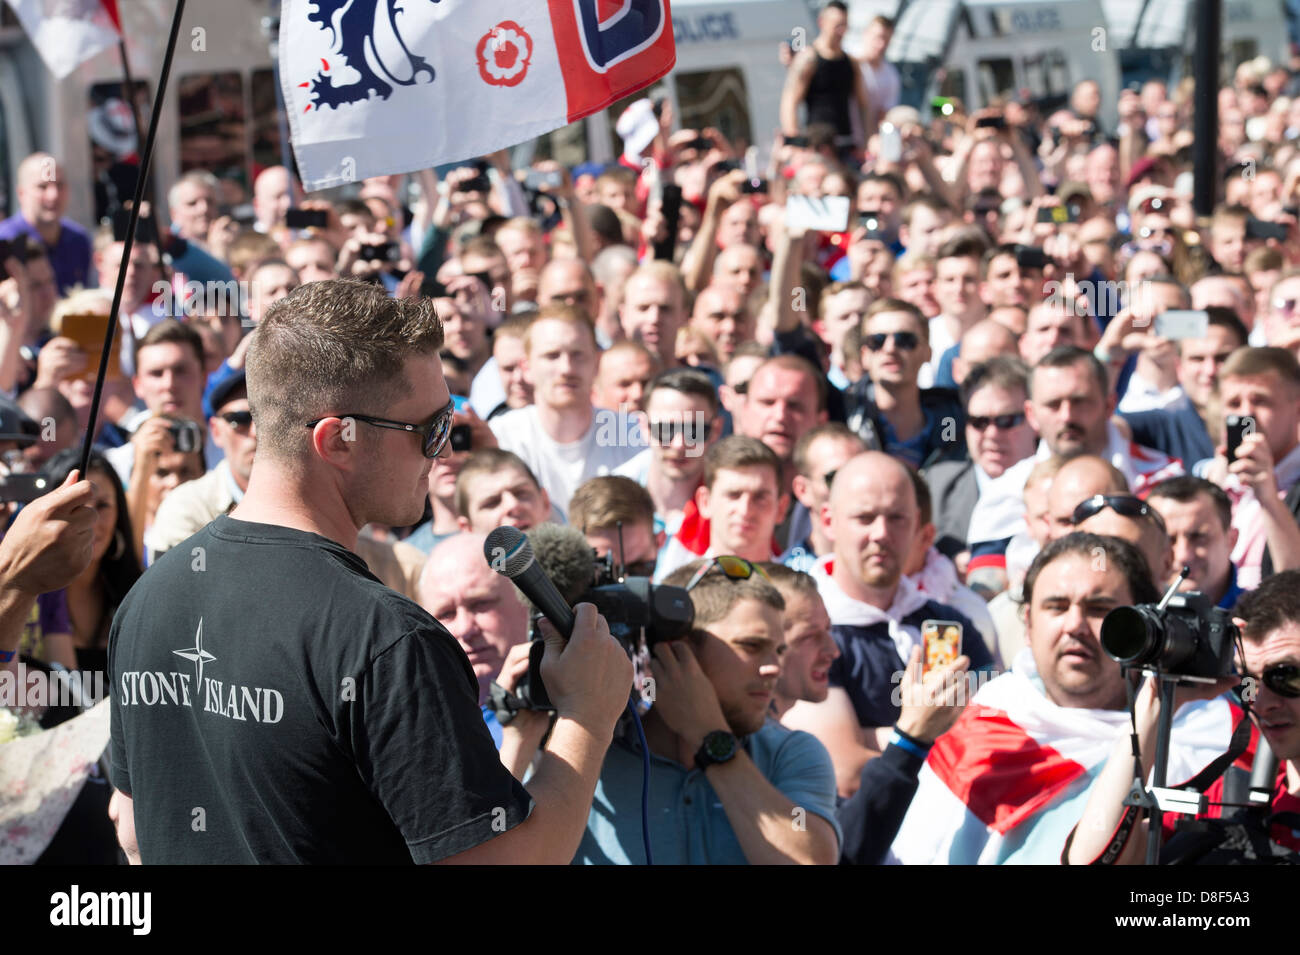 English Defence League EDL rally in front of Downing Street on May 27th 2013. EDL leader Tommy Robinson speaks to - Stock Image